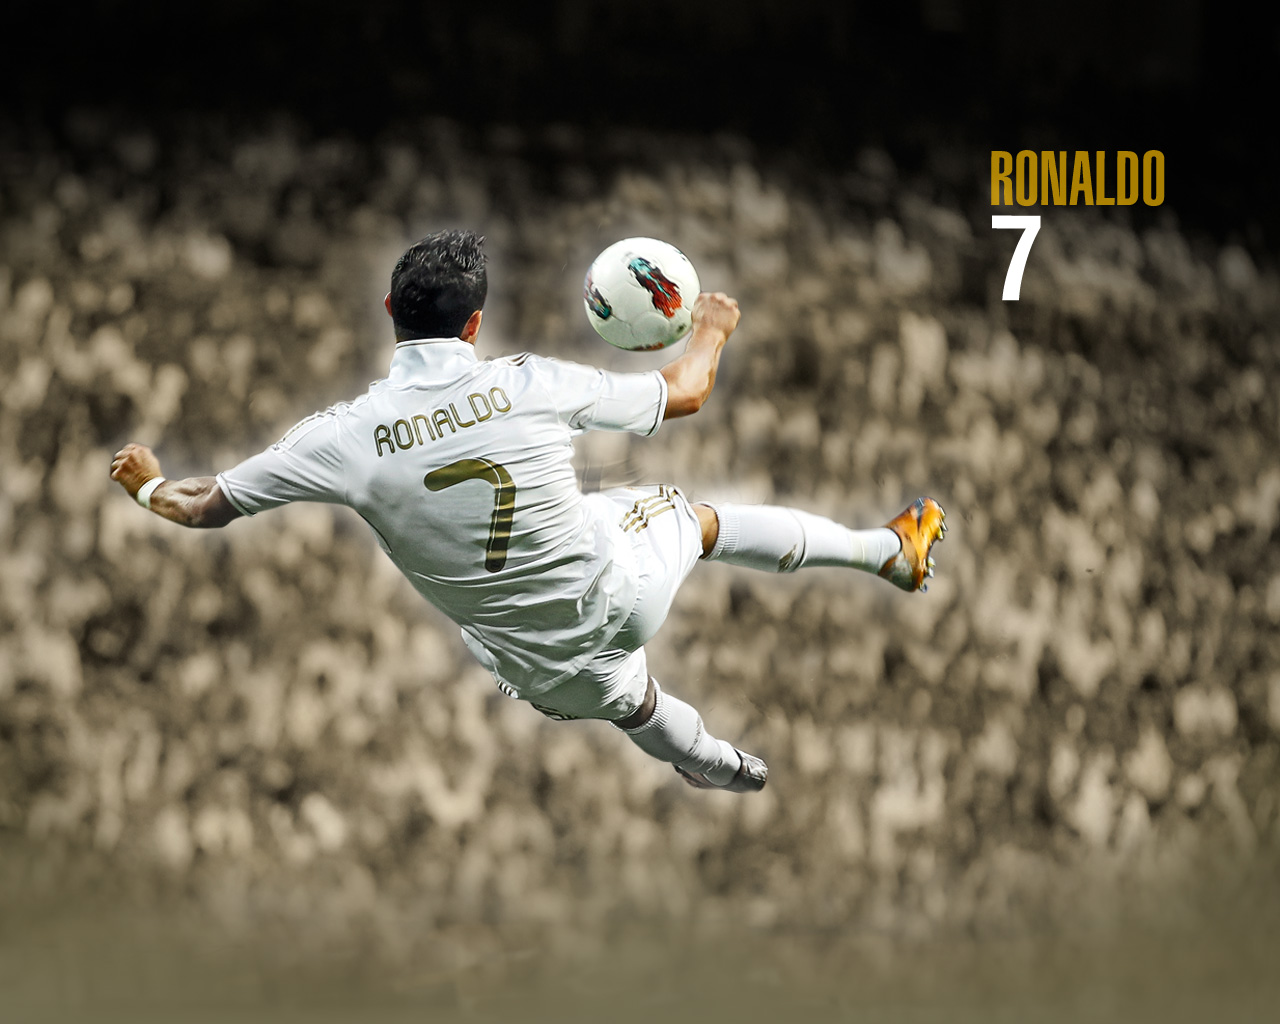 Cristiano ronaldo hd wallpapers 2012 2013 all about hd wallpapers - Hd photos of cr7 ...